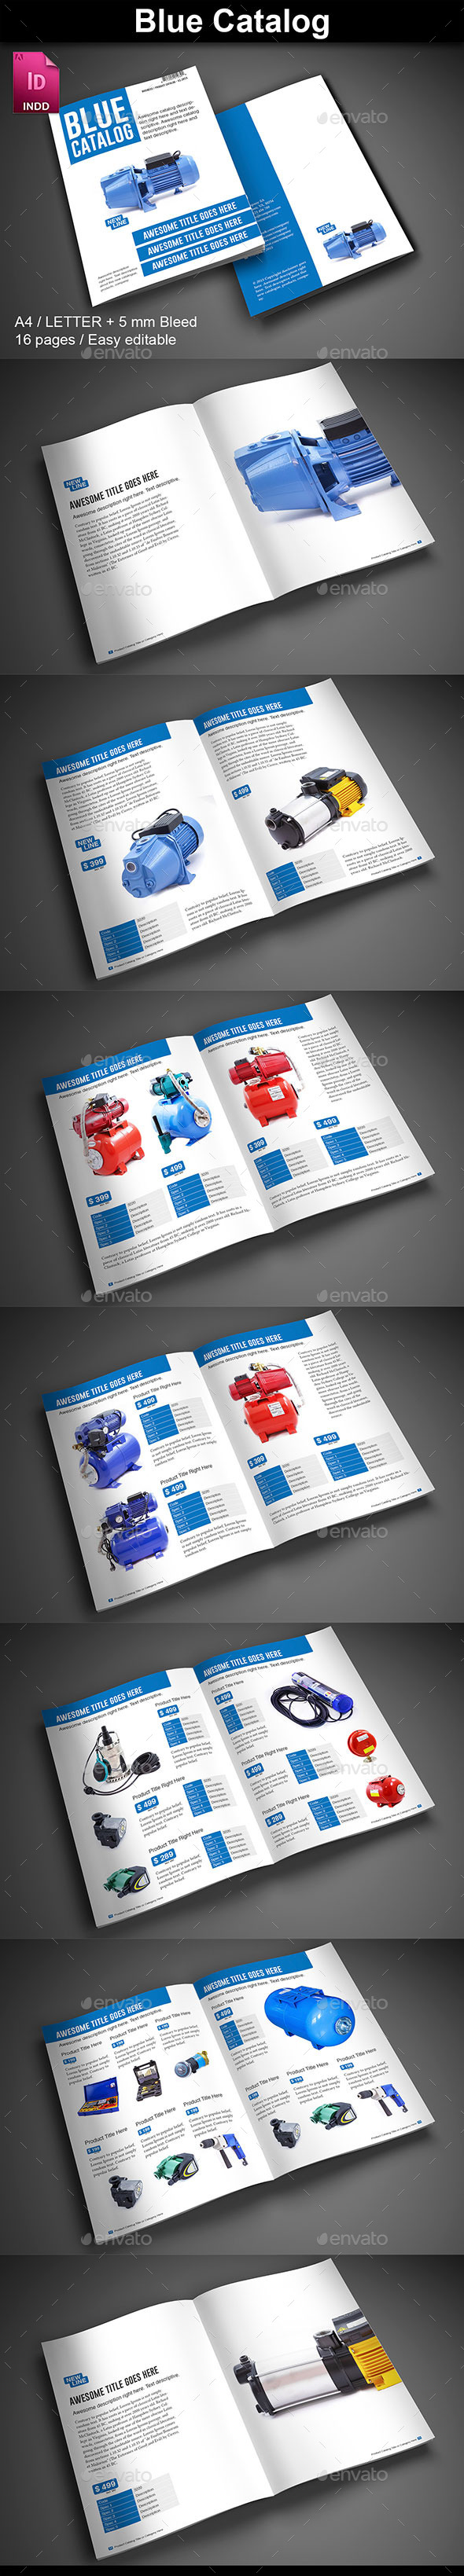 Blue Catalog - Catalogs Brochures